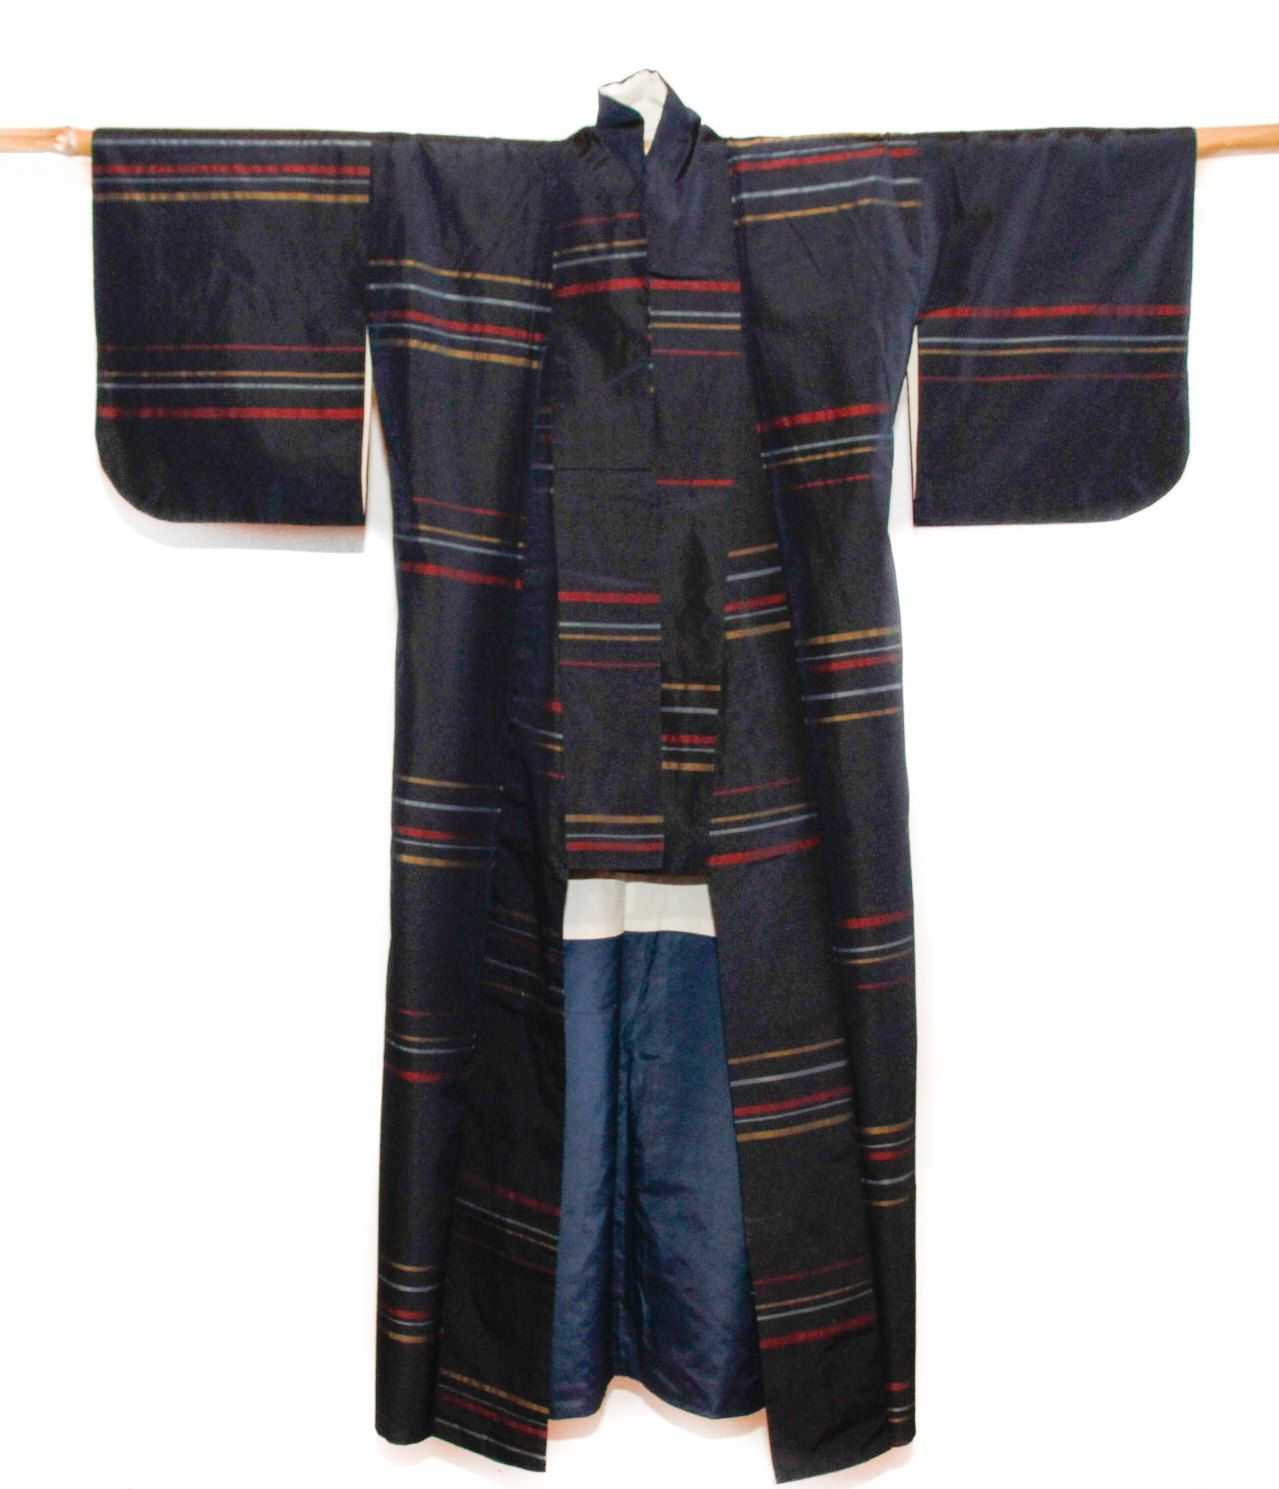 Navy Blue Japanese Vintage Kimono with Stripes, Robe, Gown, Coverup, Lounge Wear, Asian Wall Display, Gifts Under 100 by CJSTonbo on Etsy